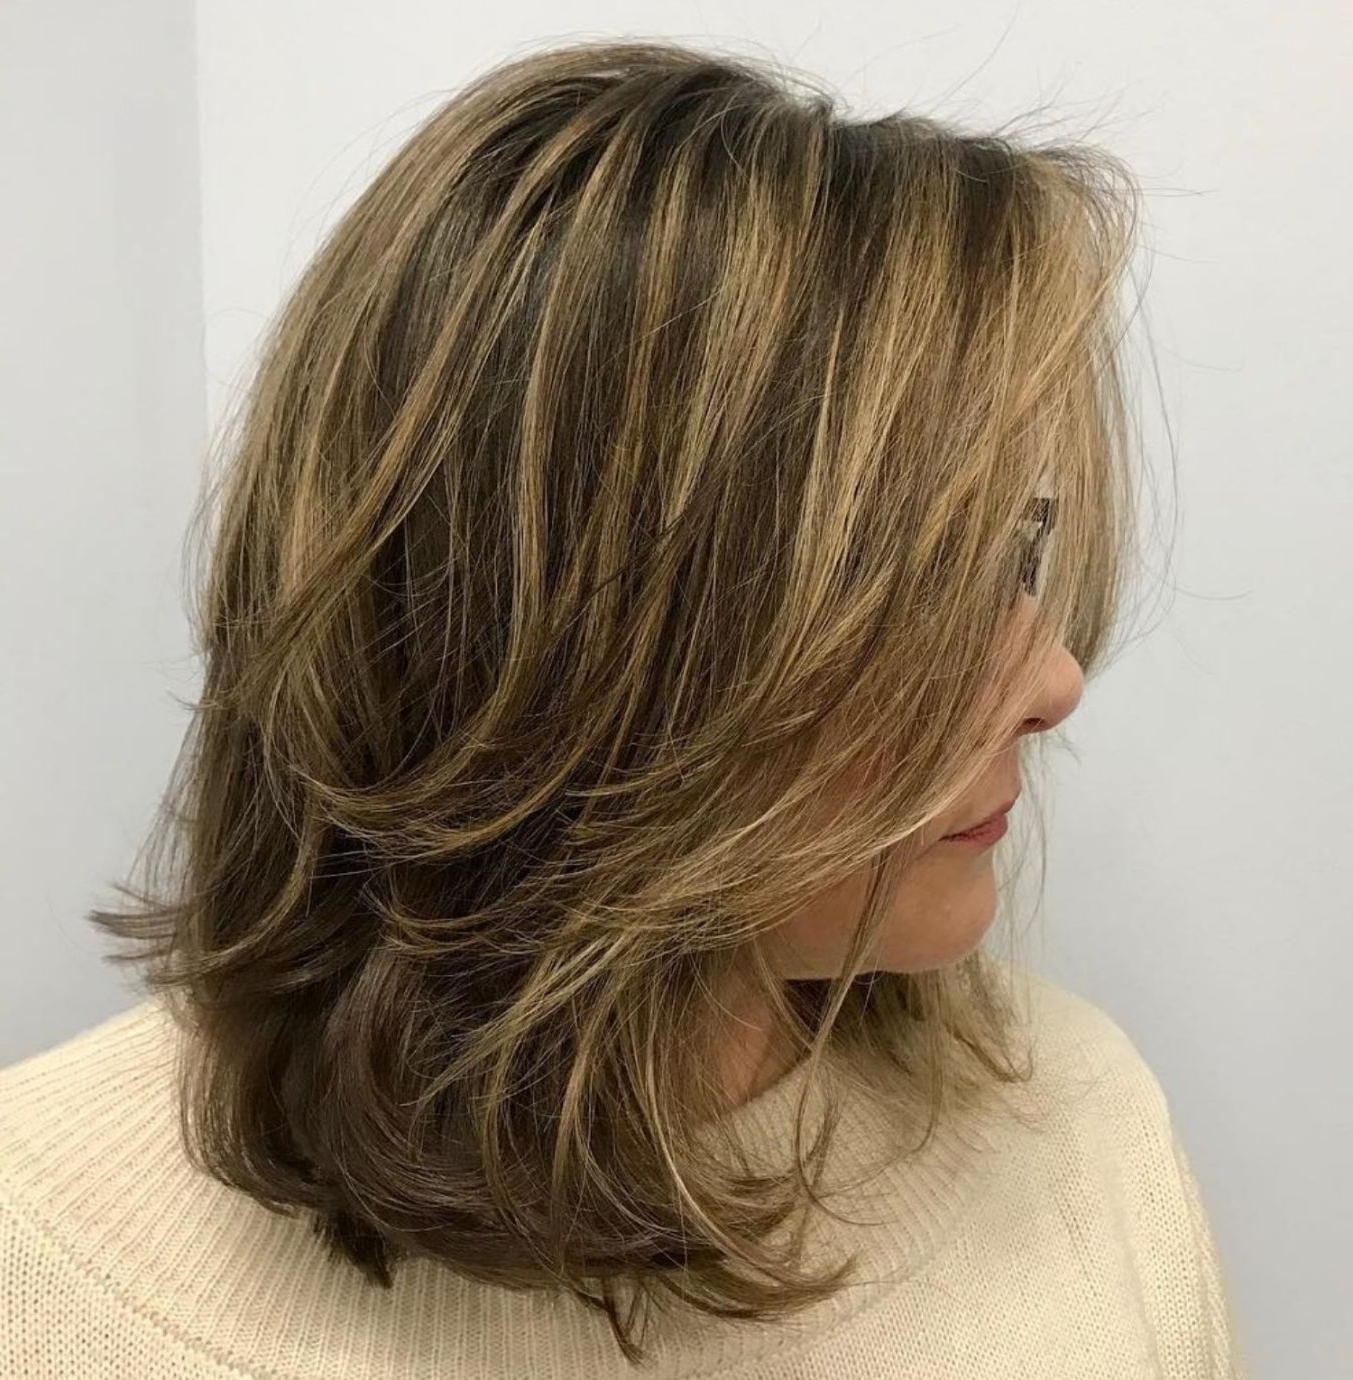 70 Brightest Medium Layered Haircuts To Light You Up (View 7 of 20)